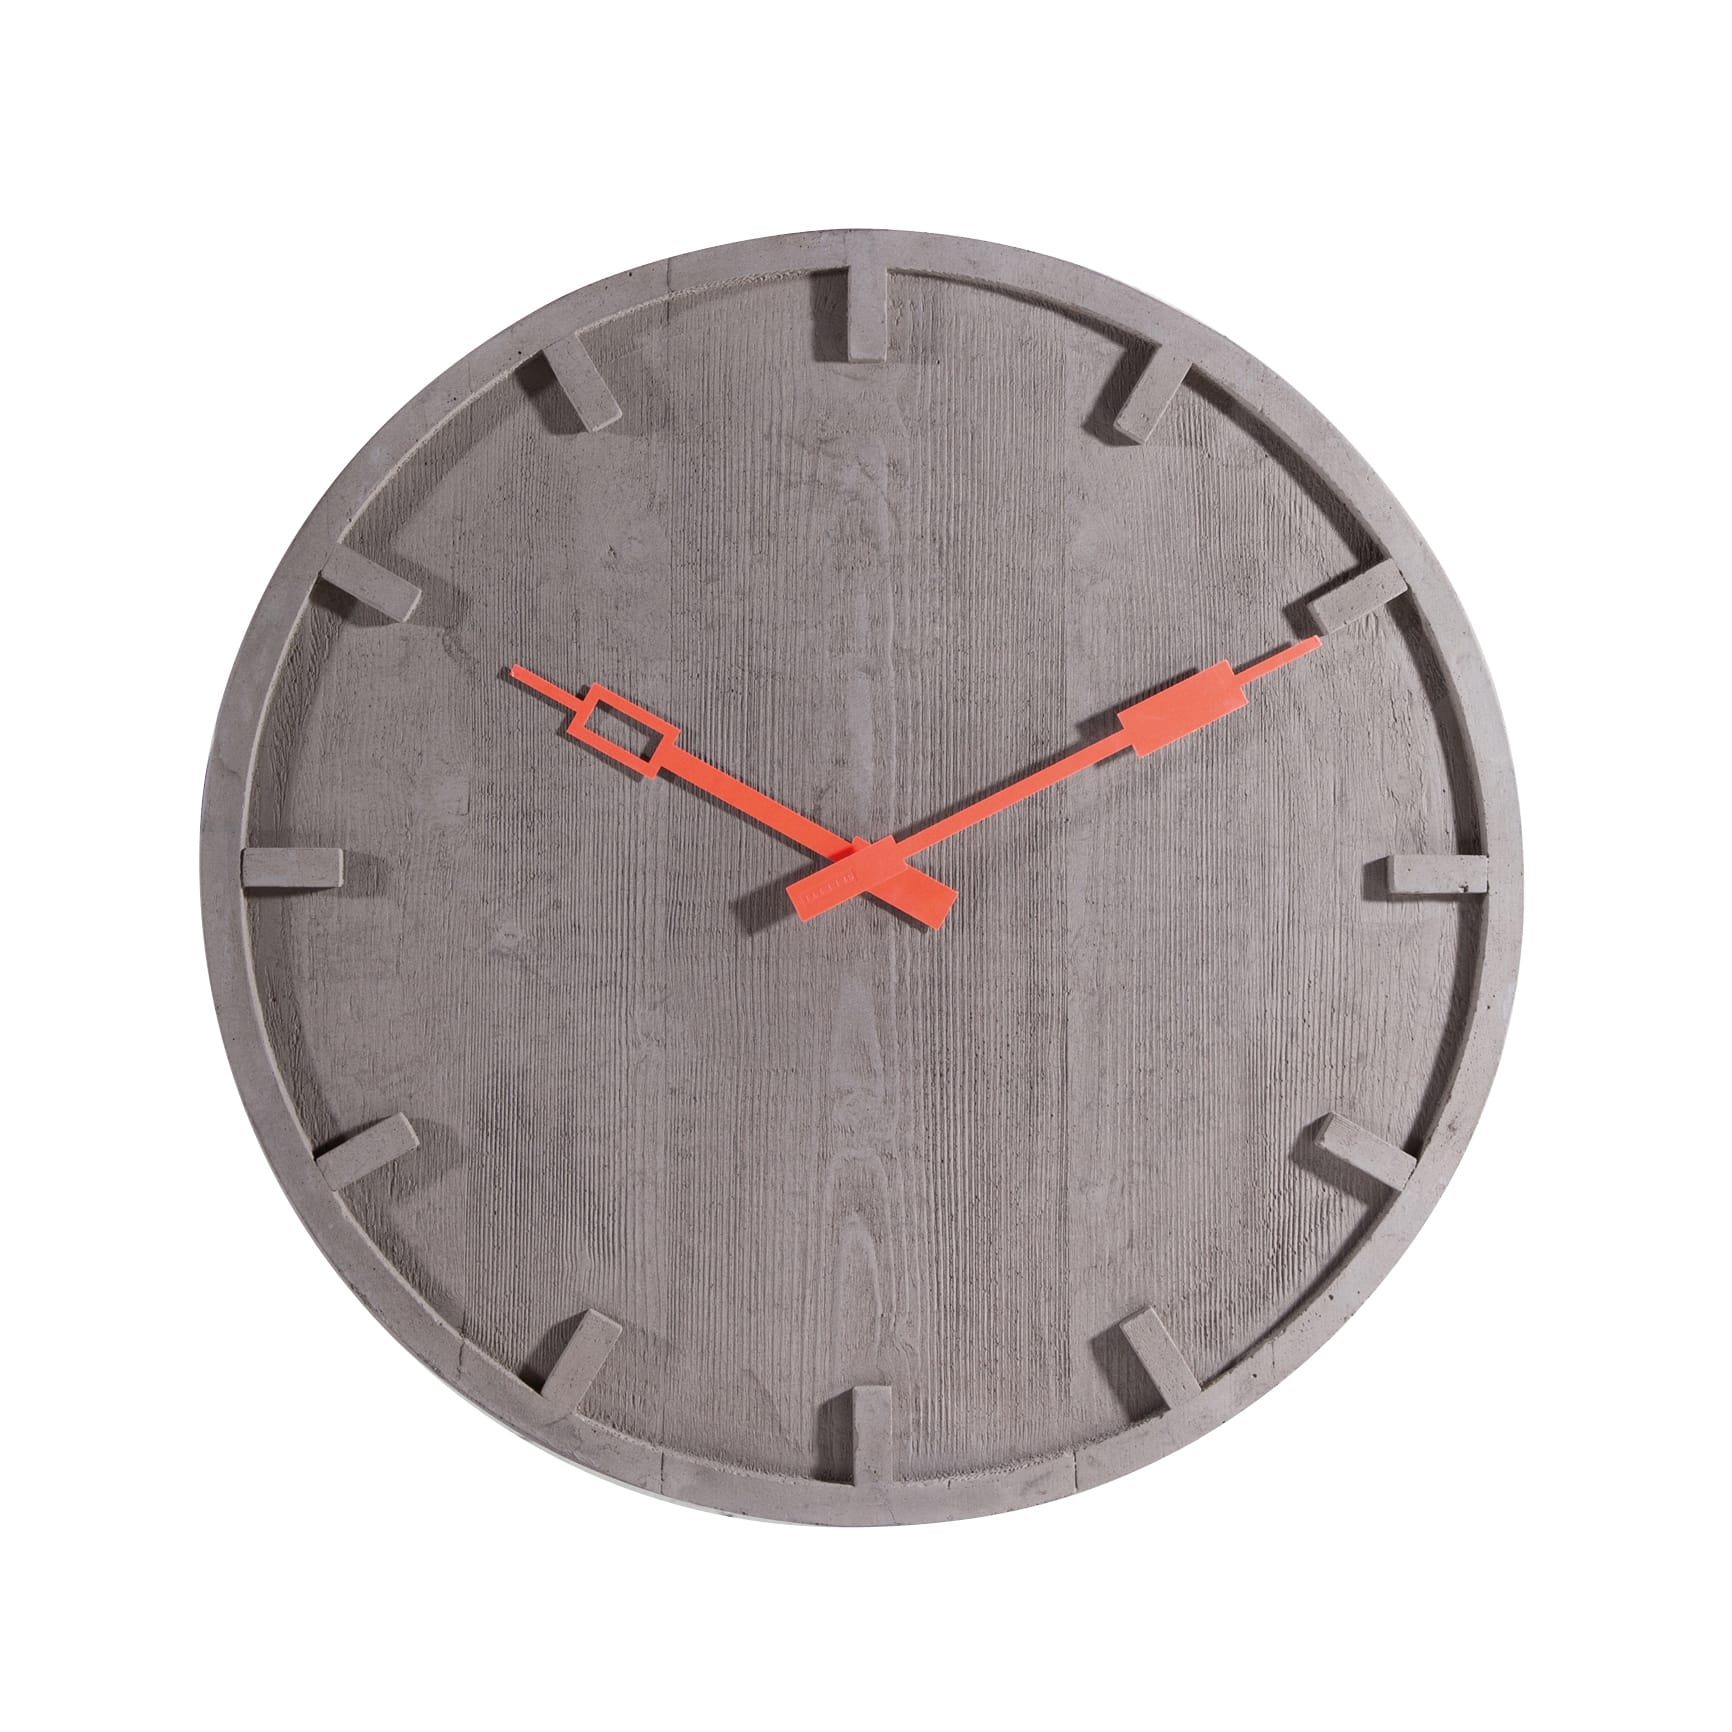 memento  cement clock  modern intentions  shop modern clocks - memento  cement clock designed by alessandro zambelli  seletti